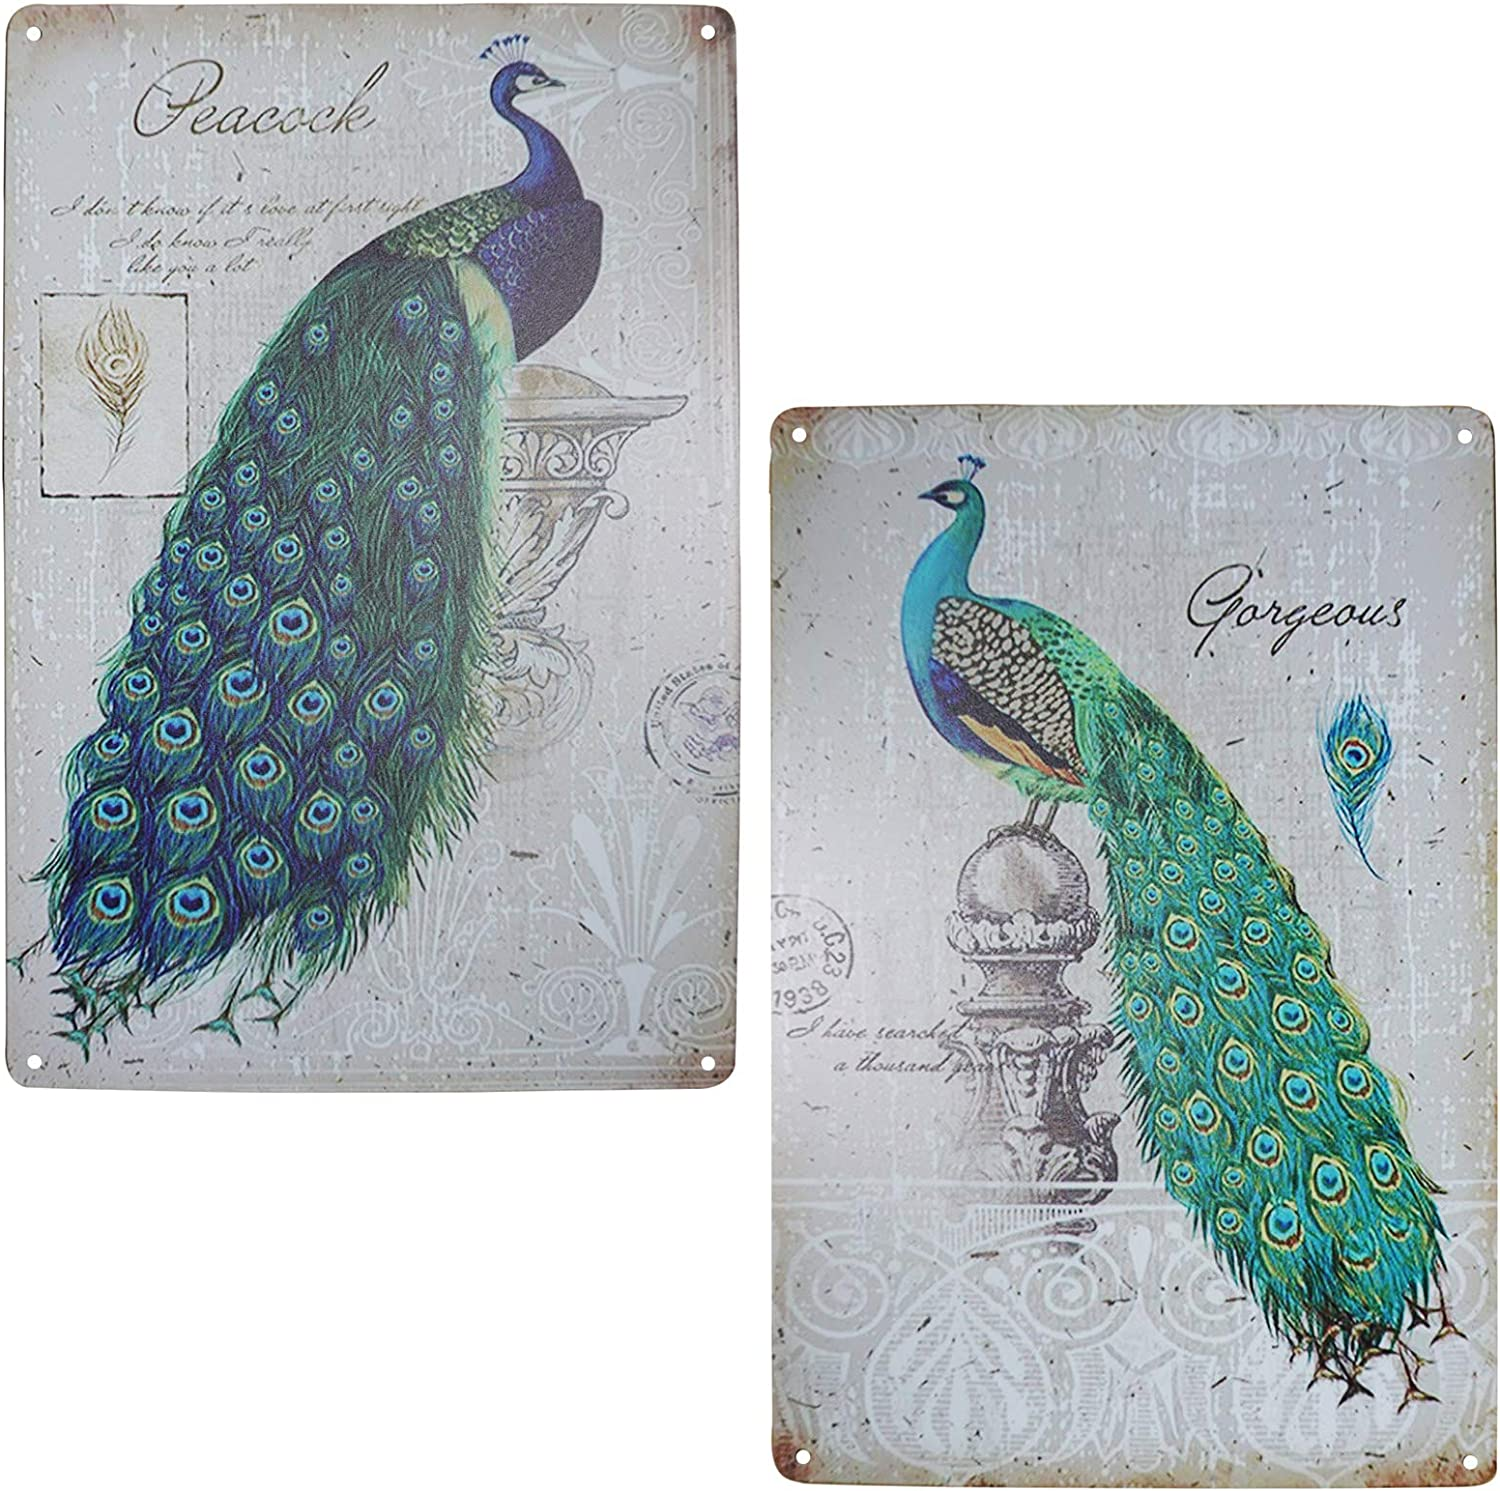 TISOSO Elegant Proud Peacock Tin Sign Art Oil Painting Wall Decor Garage Diner Cafe Vintage Metal Bar Signs for Home Living Room Bedroom Bathroom Office 2pcs-8x12inch